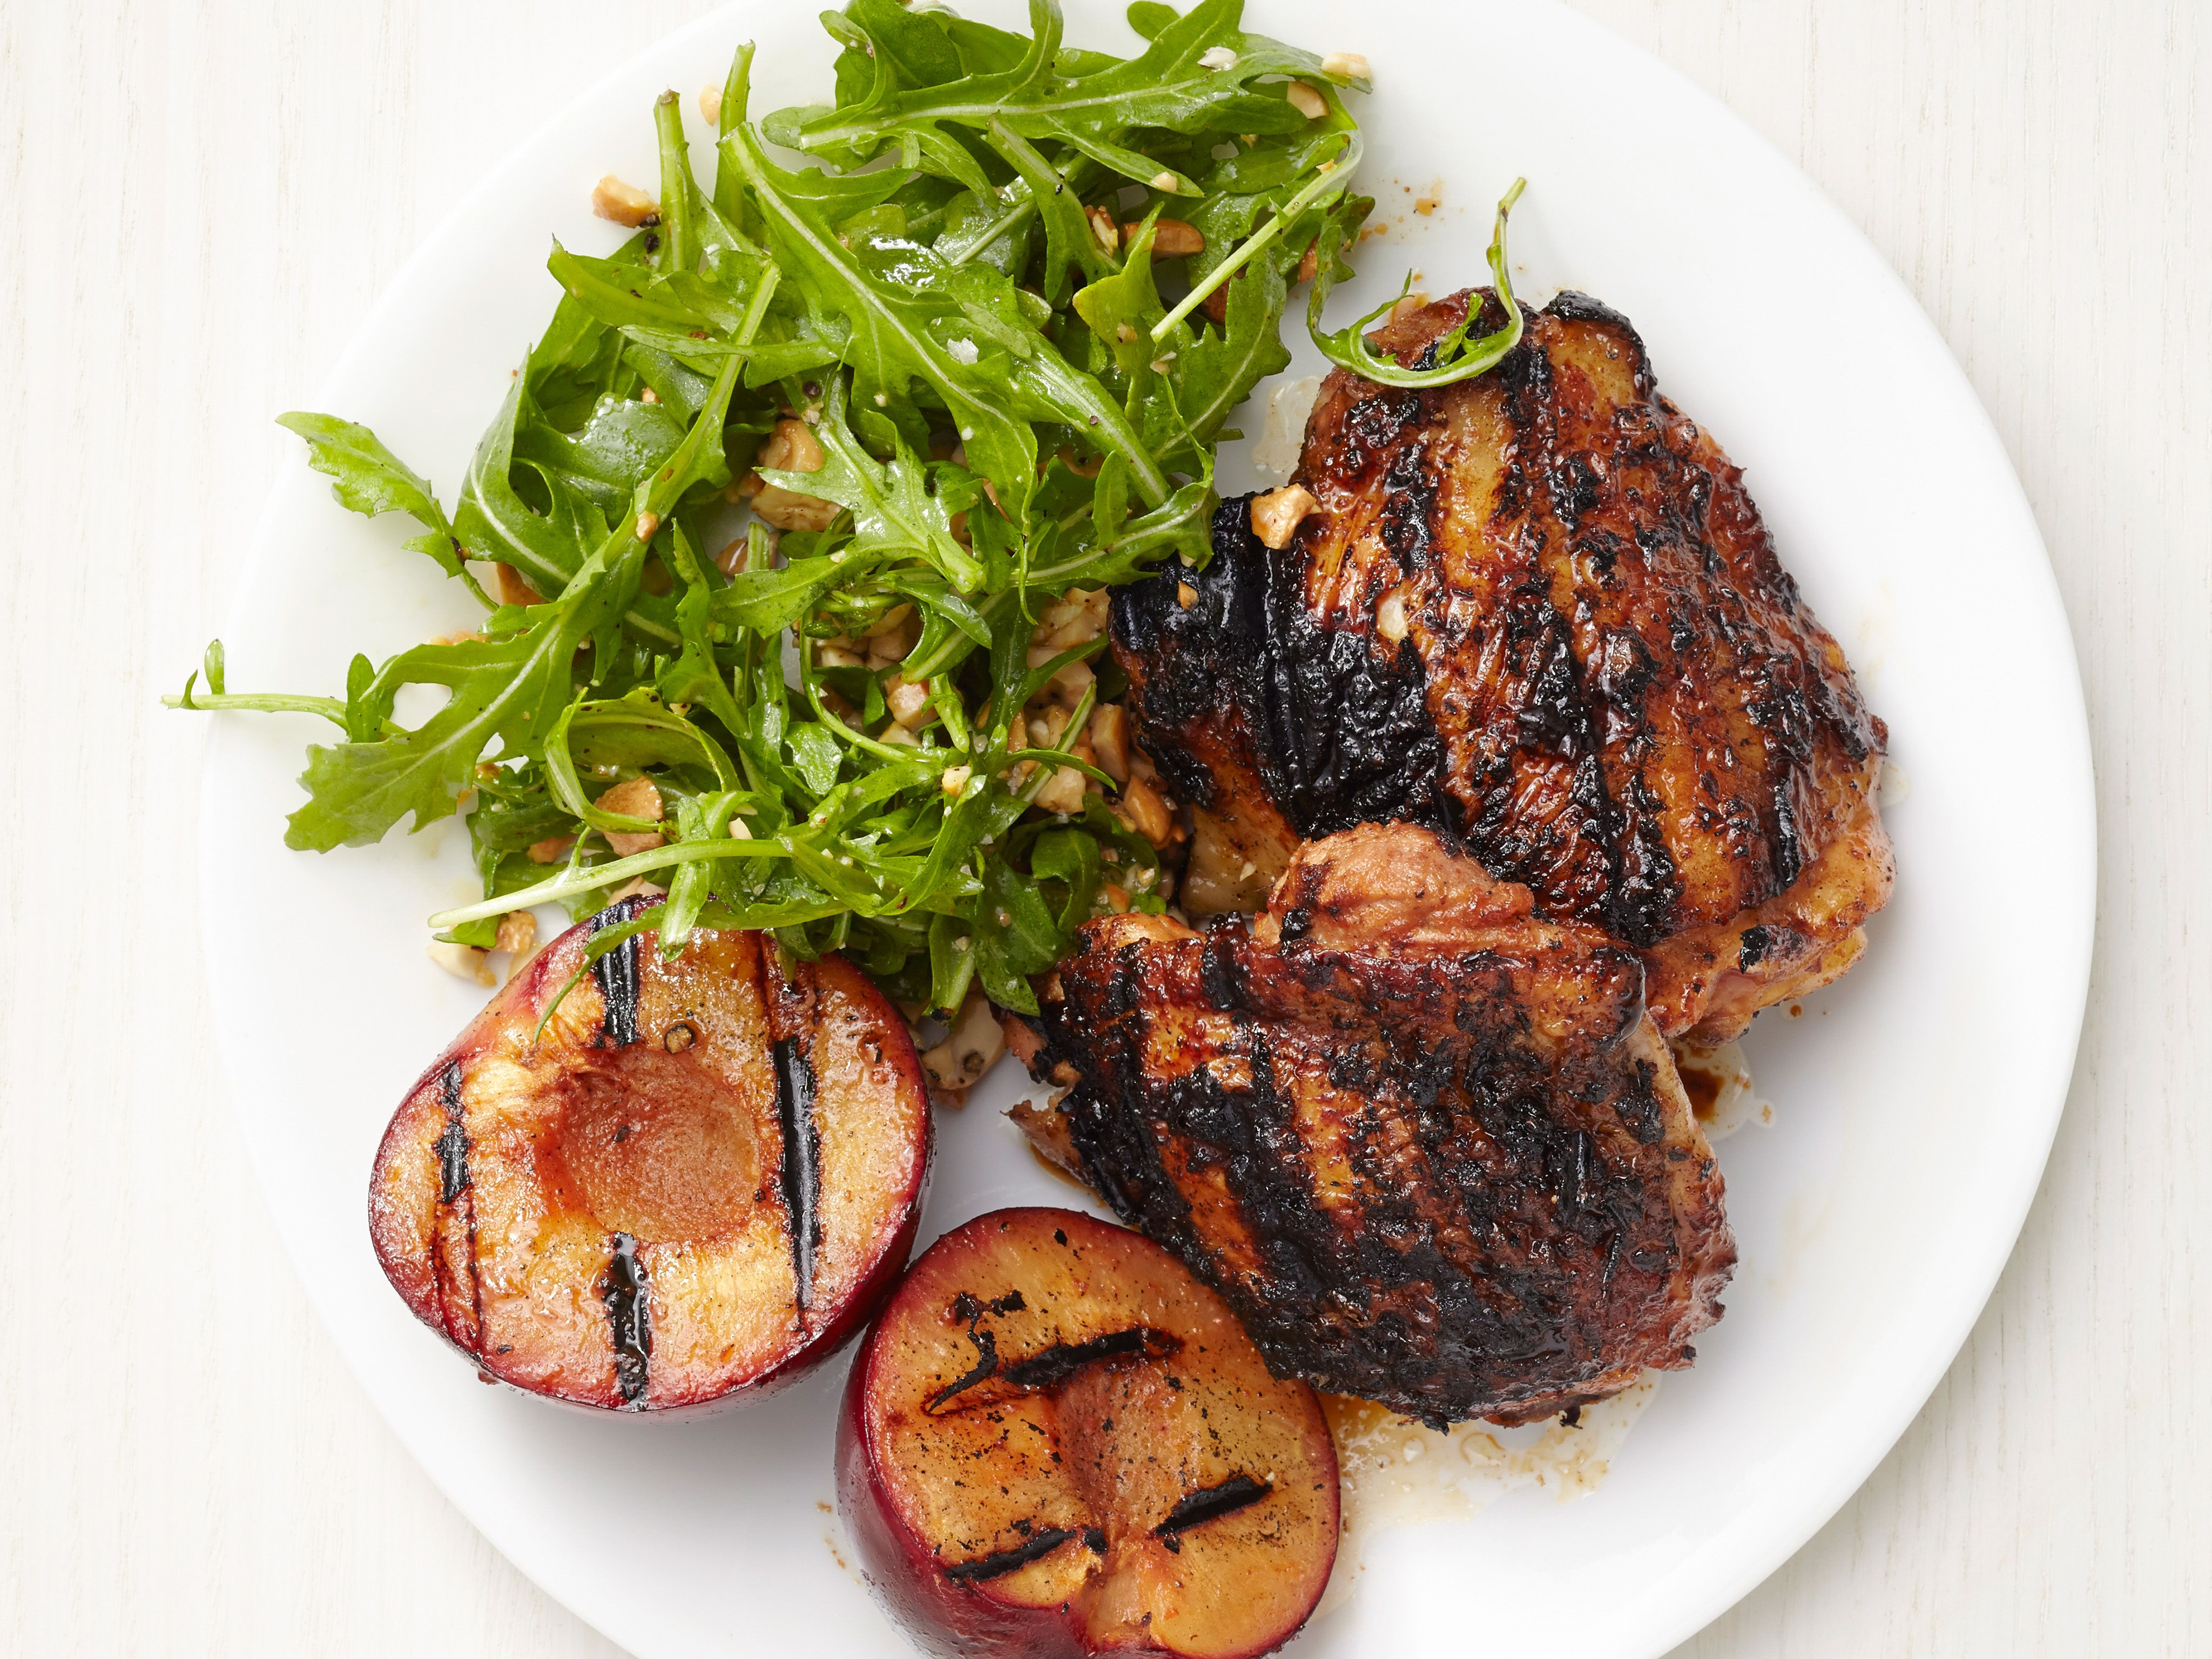 Grilled hoisin chicken and plums recipe grilling boneless grilled hoisin chicken and plums forumfinder Choice Image